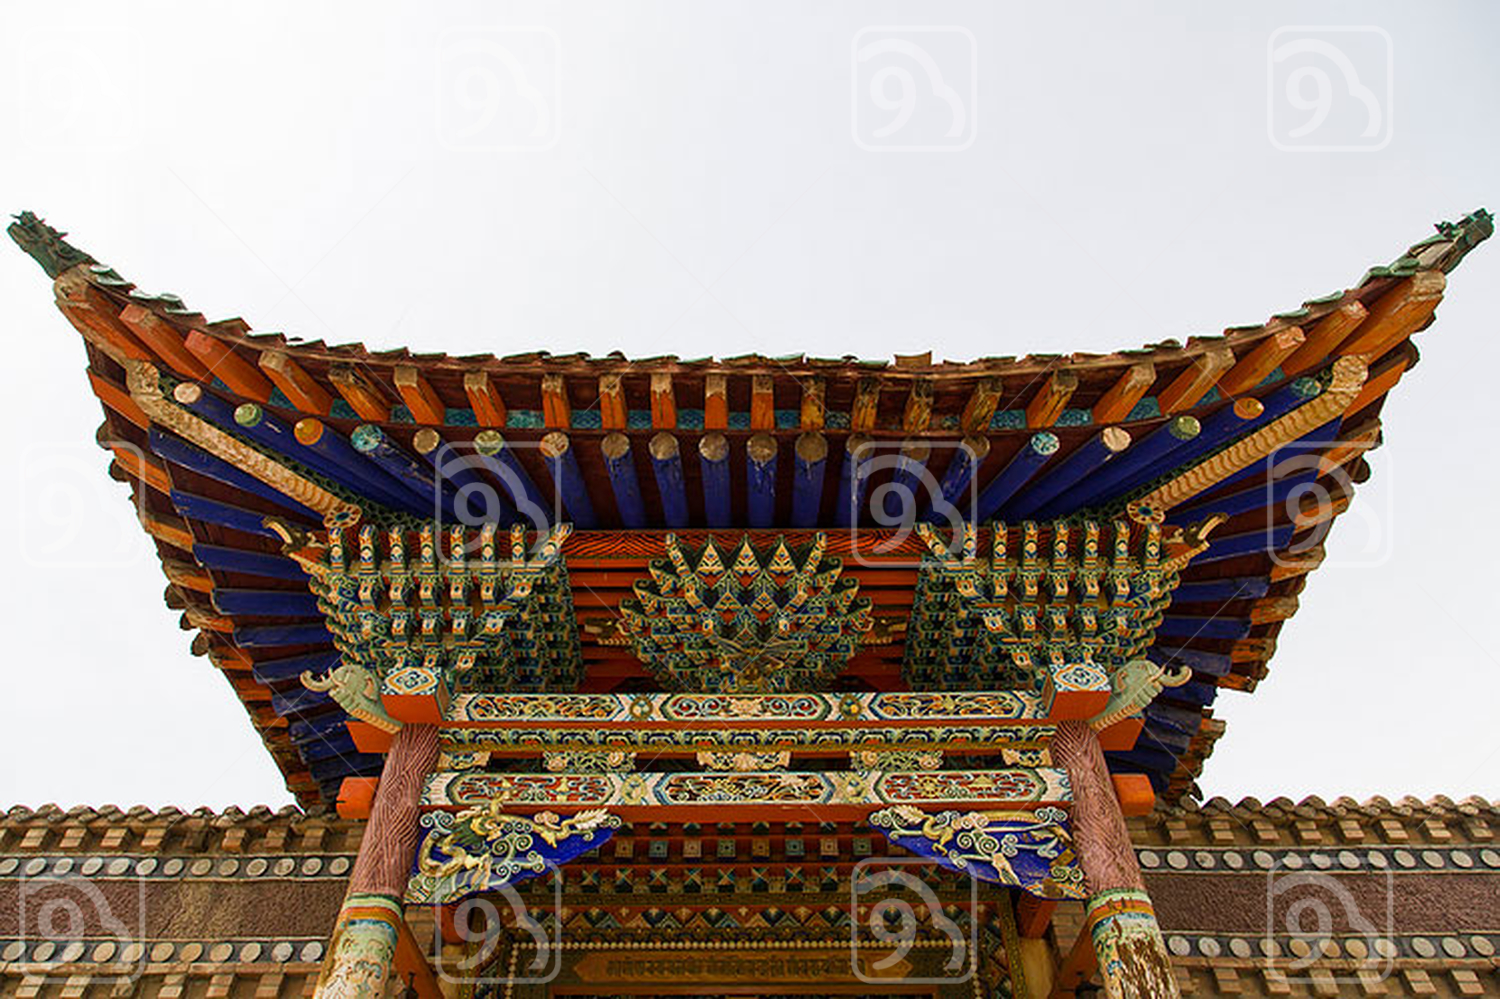 A Rou Big Temple in Qinghai province, China